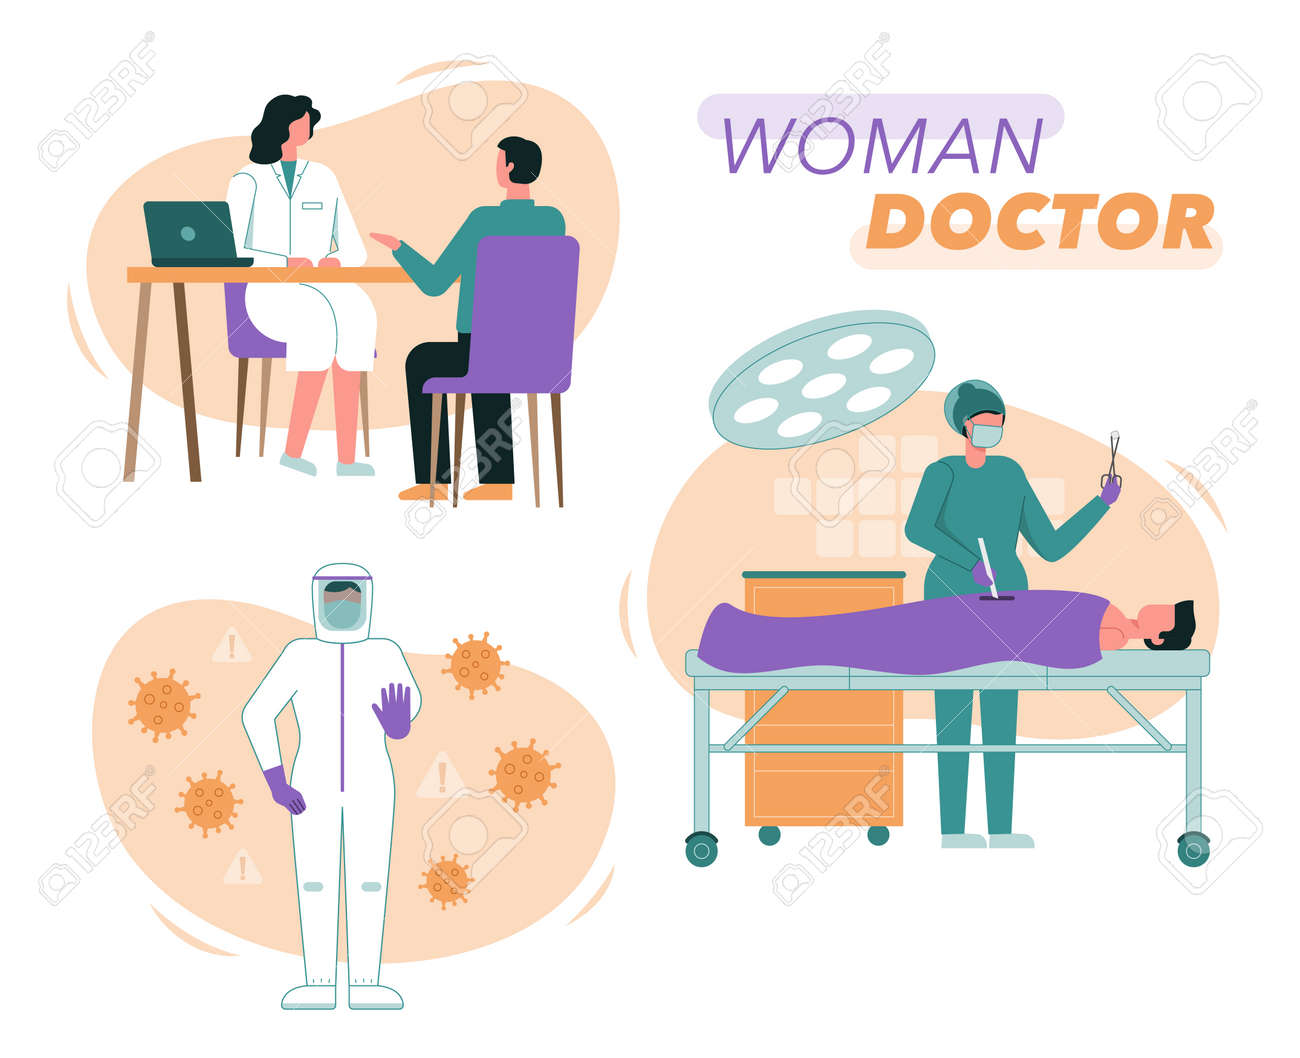 Vector illustration of female doctors and nurses - 158277933